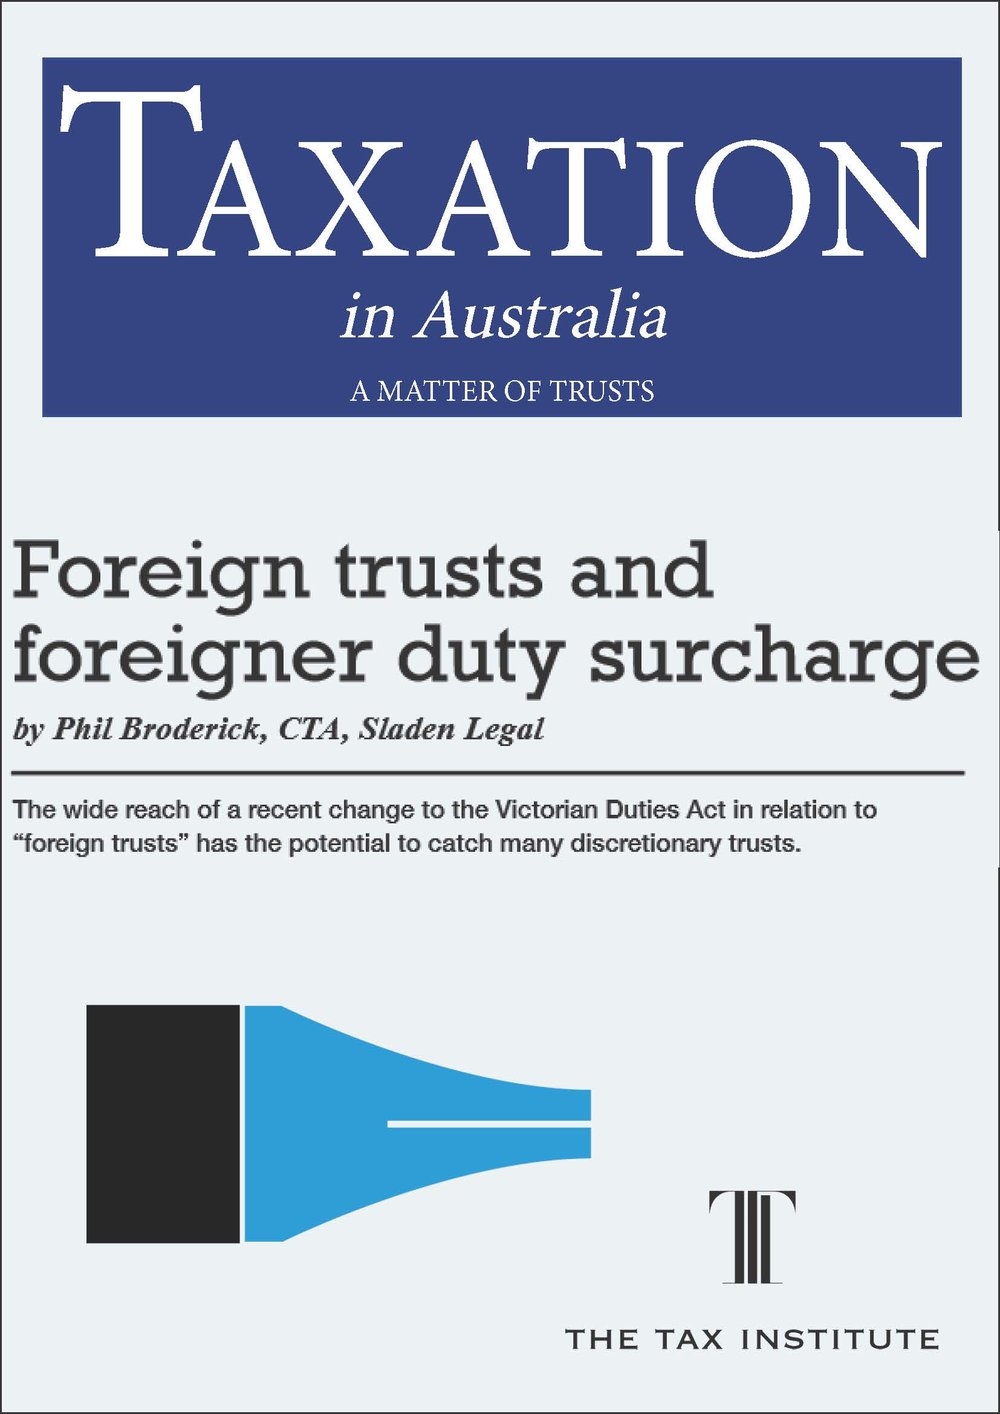 Foreign trusts and foreigner duty surcharge 27 May 2016